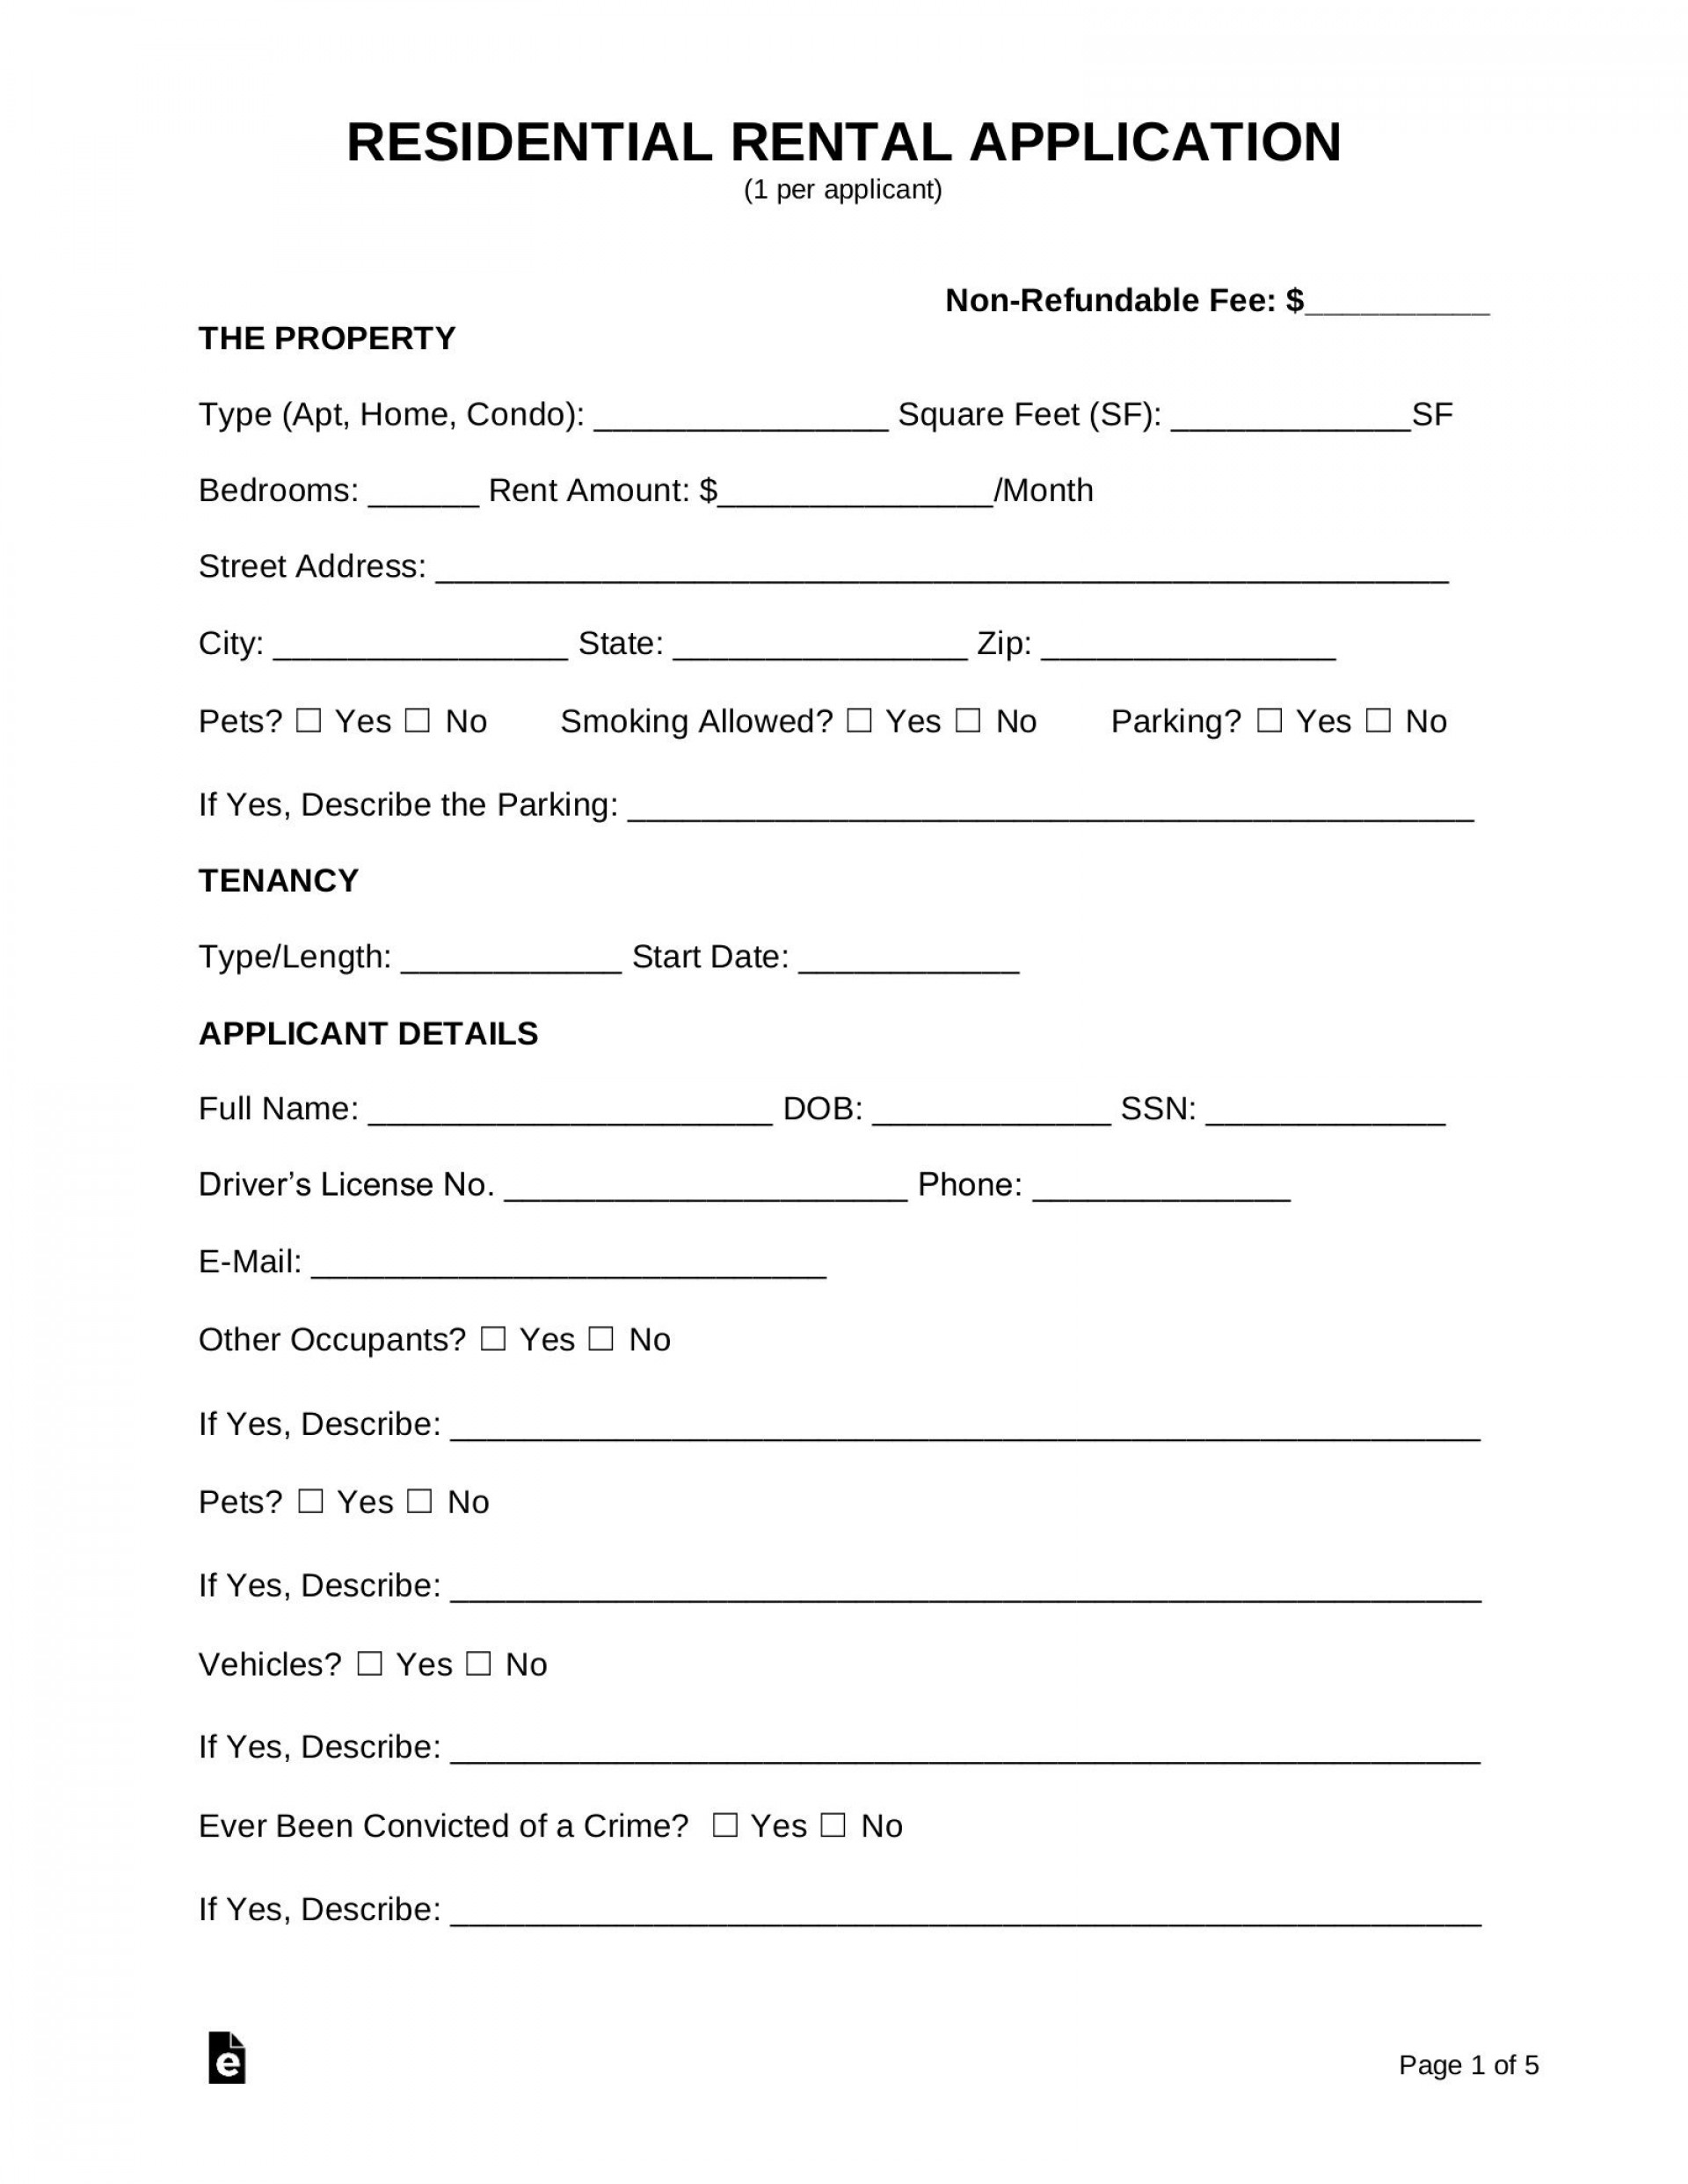 008 Wonderful Apartment Rental Application Template High Definition  Free Form Ontario1920